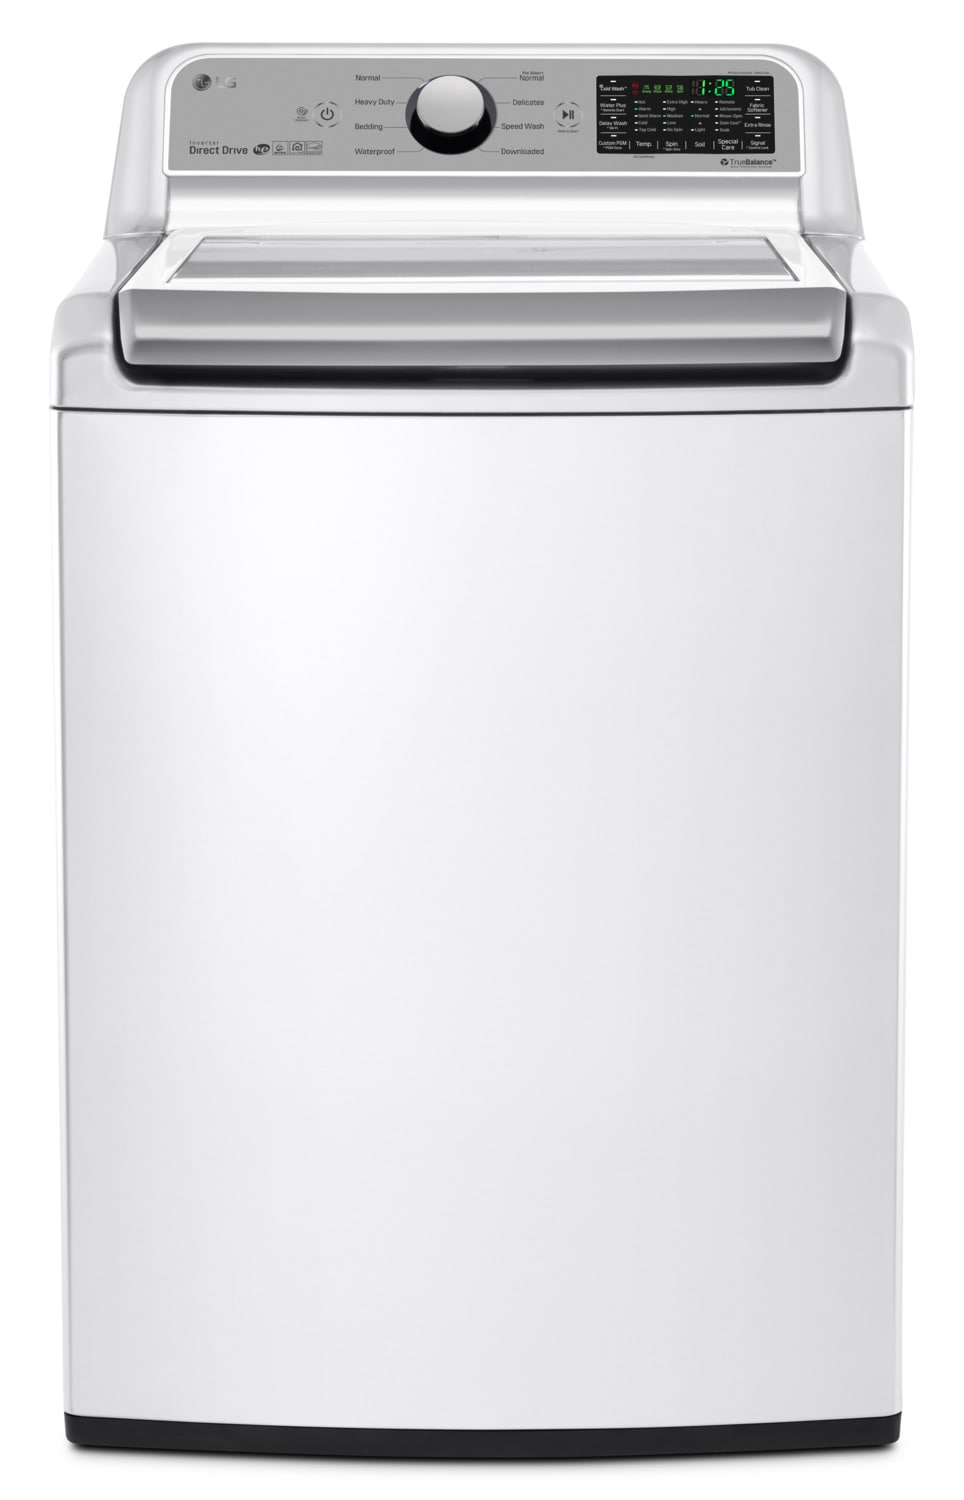 Washers and Dryers - LG 5.8 Cu. Ft. Top-Load Washer with 6Motion™ Technology – WT7200CW